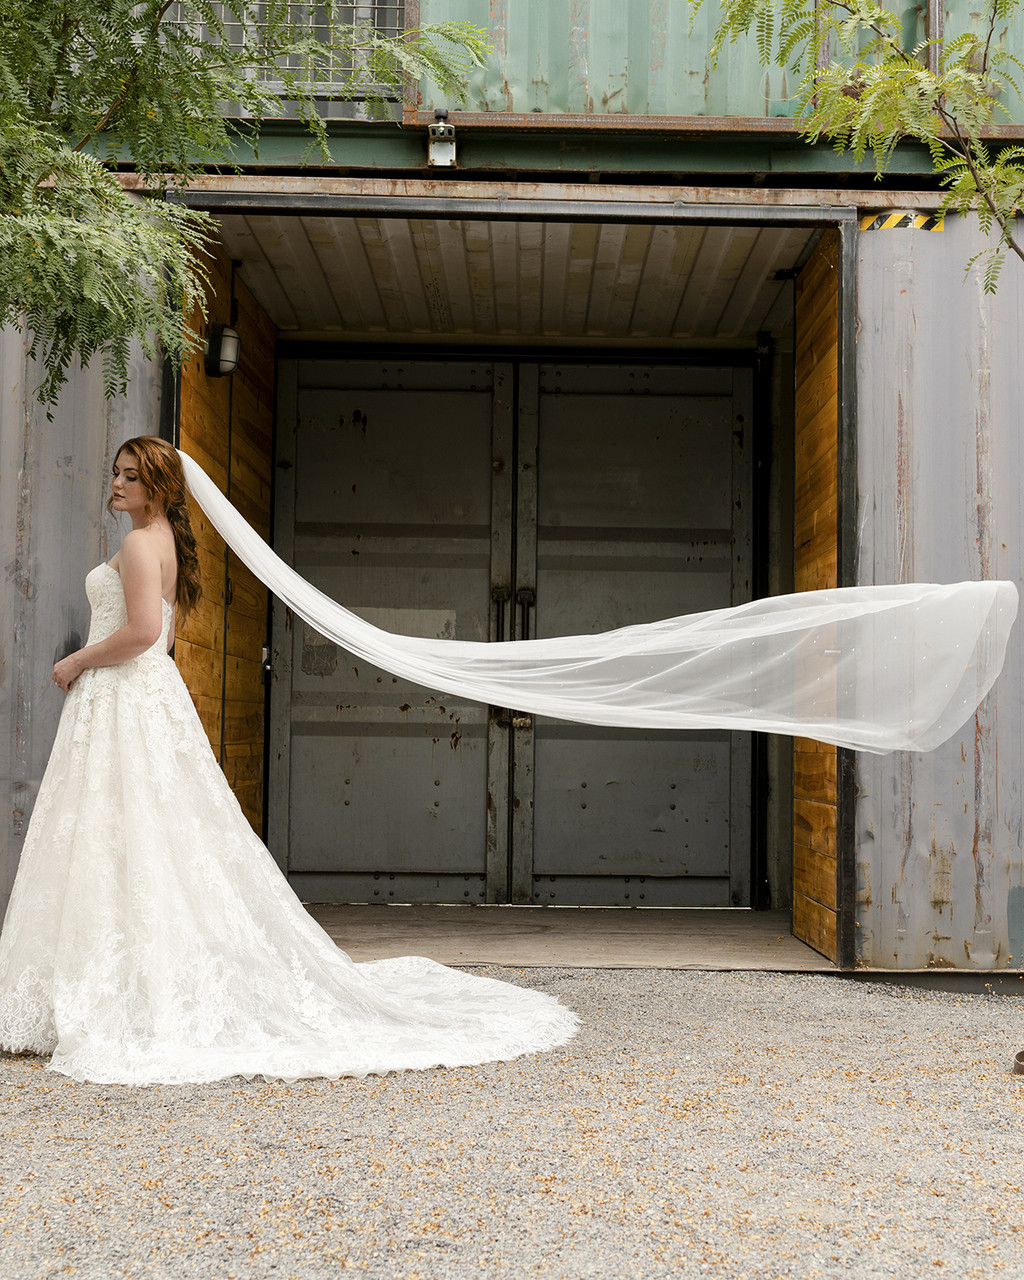 En Vogue Bridal Style V2294C - English Luxe Cathedral Lace Veil - 108 Inches